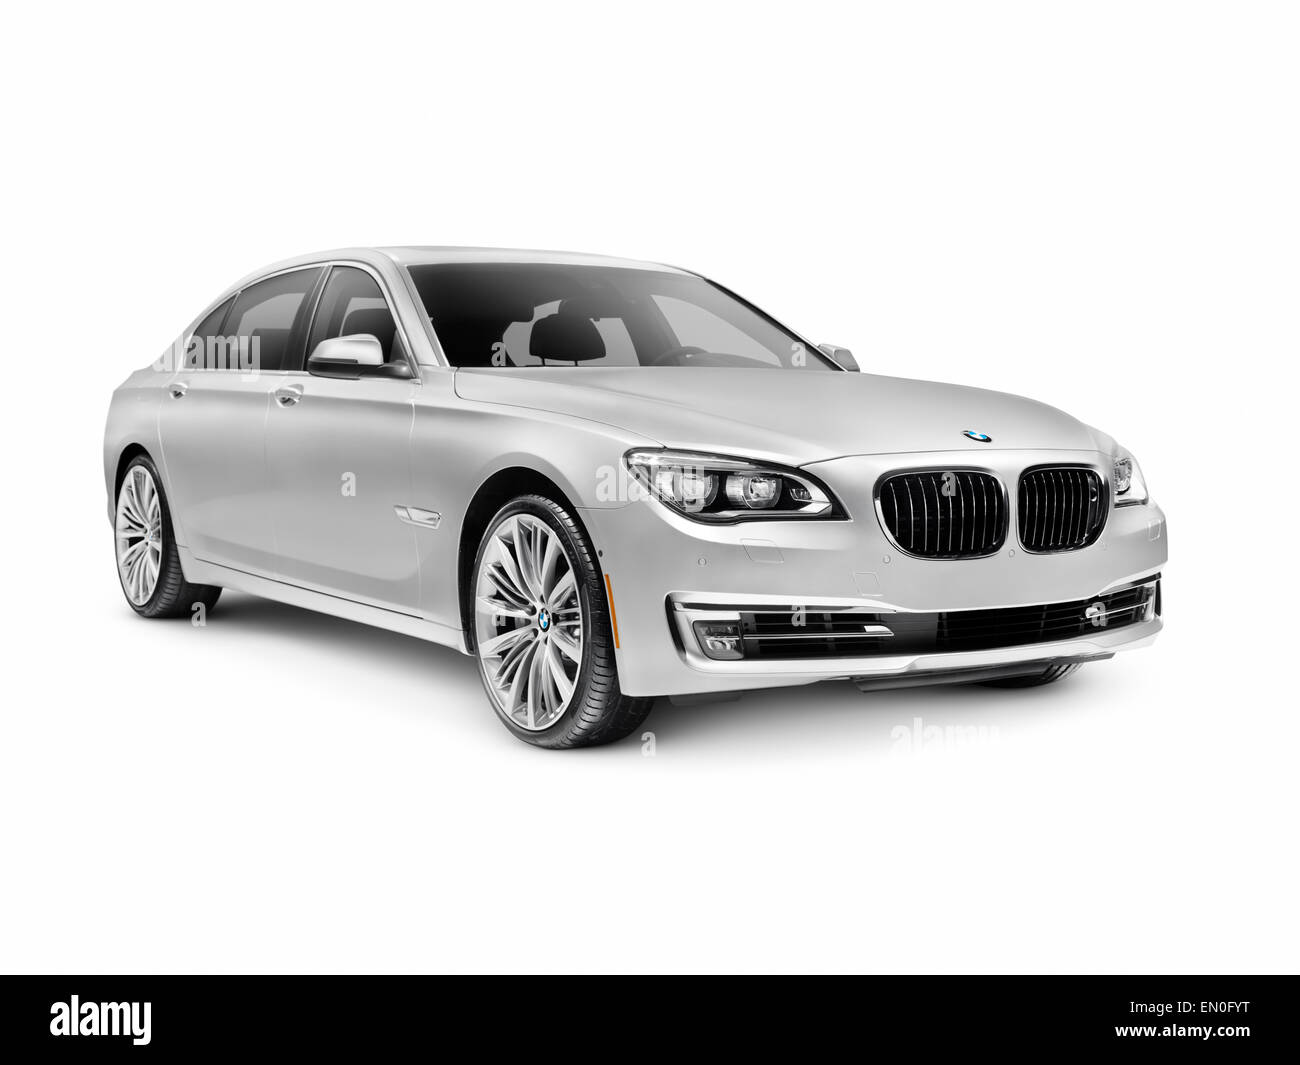 Silver 2015 BMW 7 series 750Li Individual luxury car isolated on white background with clipping path - Stock Image